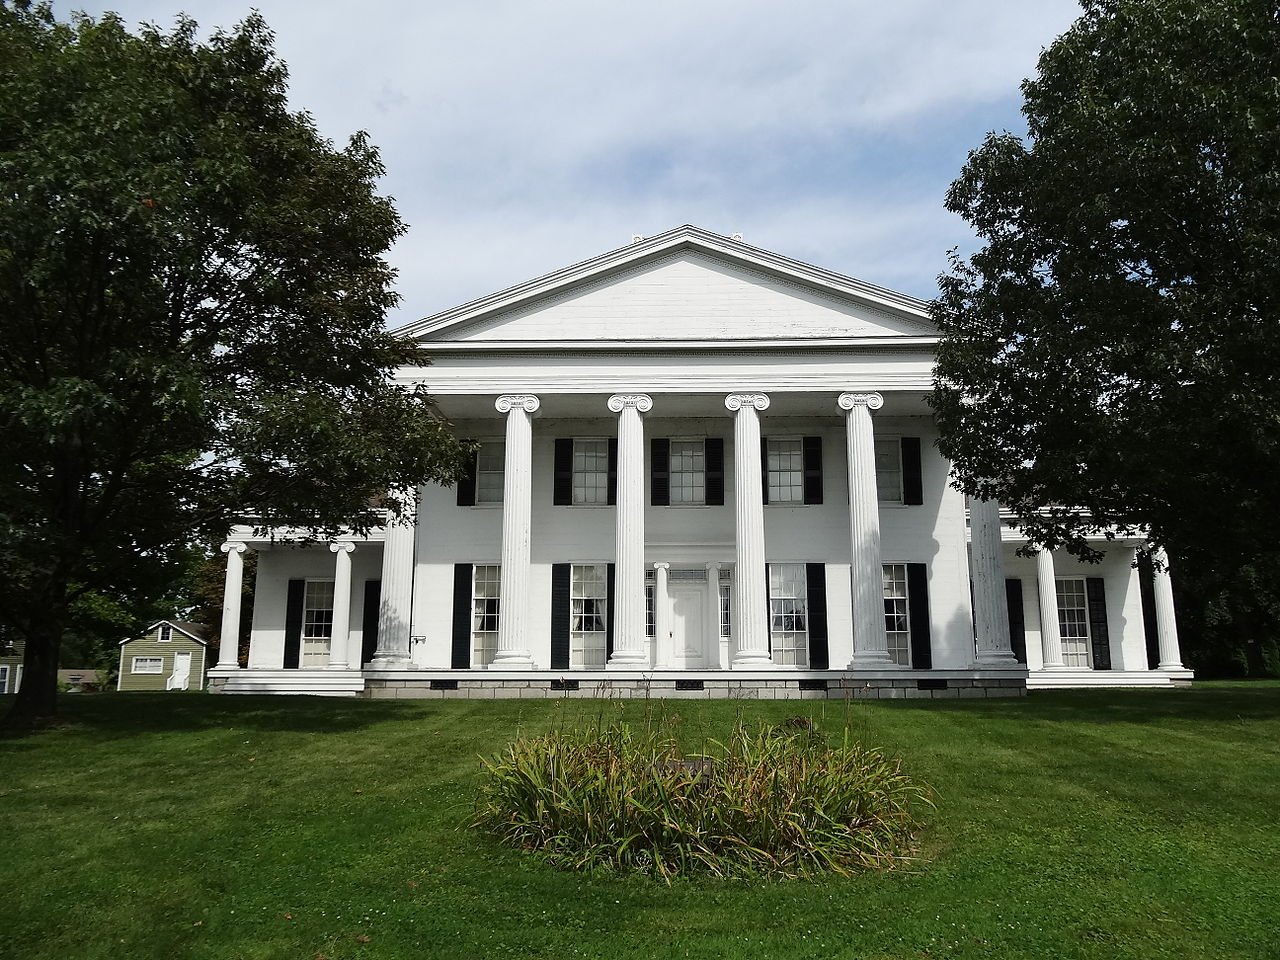 Rose Hill Mansion was built in 1839. It was declared a National Historic Landmark for its Greek Revival architecture, which is considered among the finest in the country.